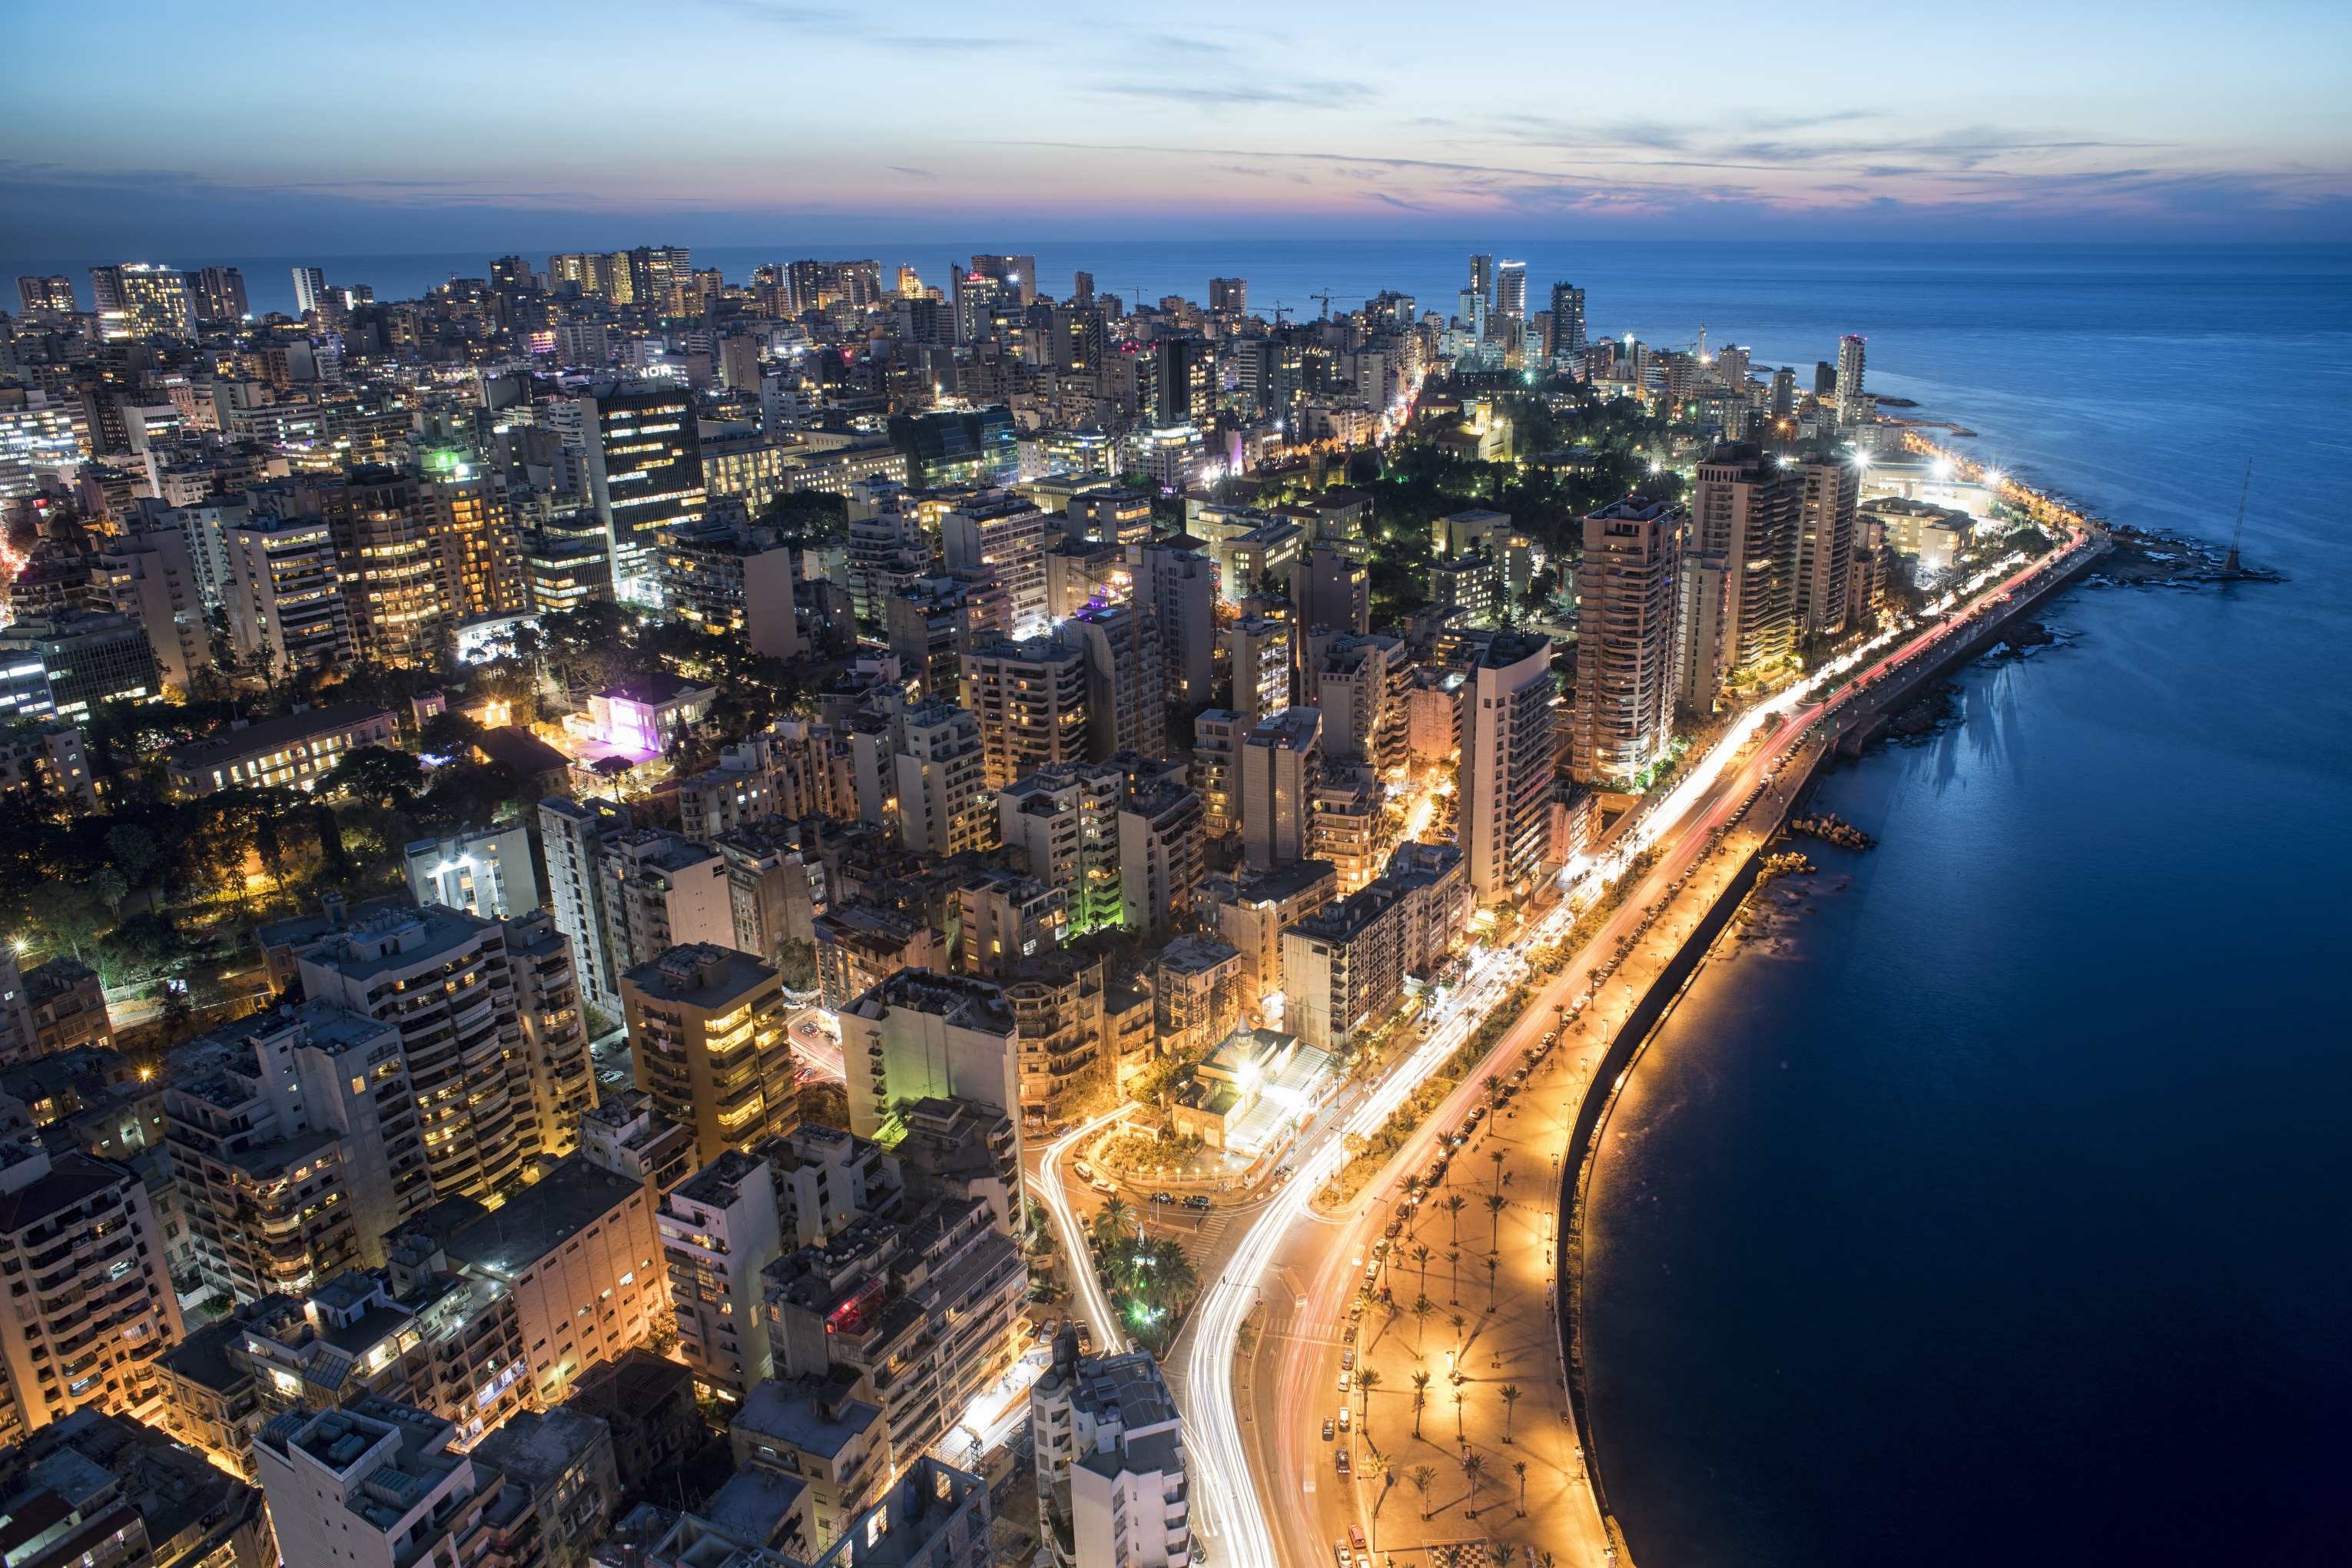 Air Company Armenia Has Increased The Number Of Flights To Beirut And From Beirut To Yerevan Aircompany Armenia